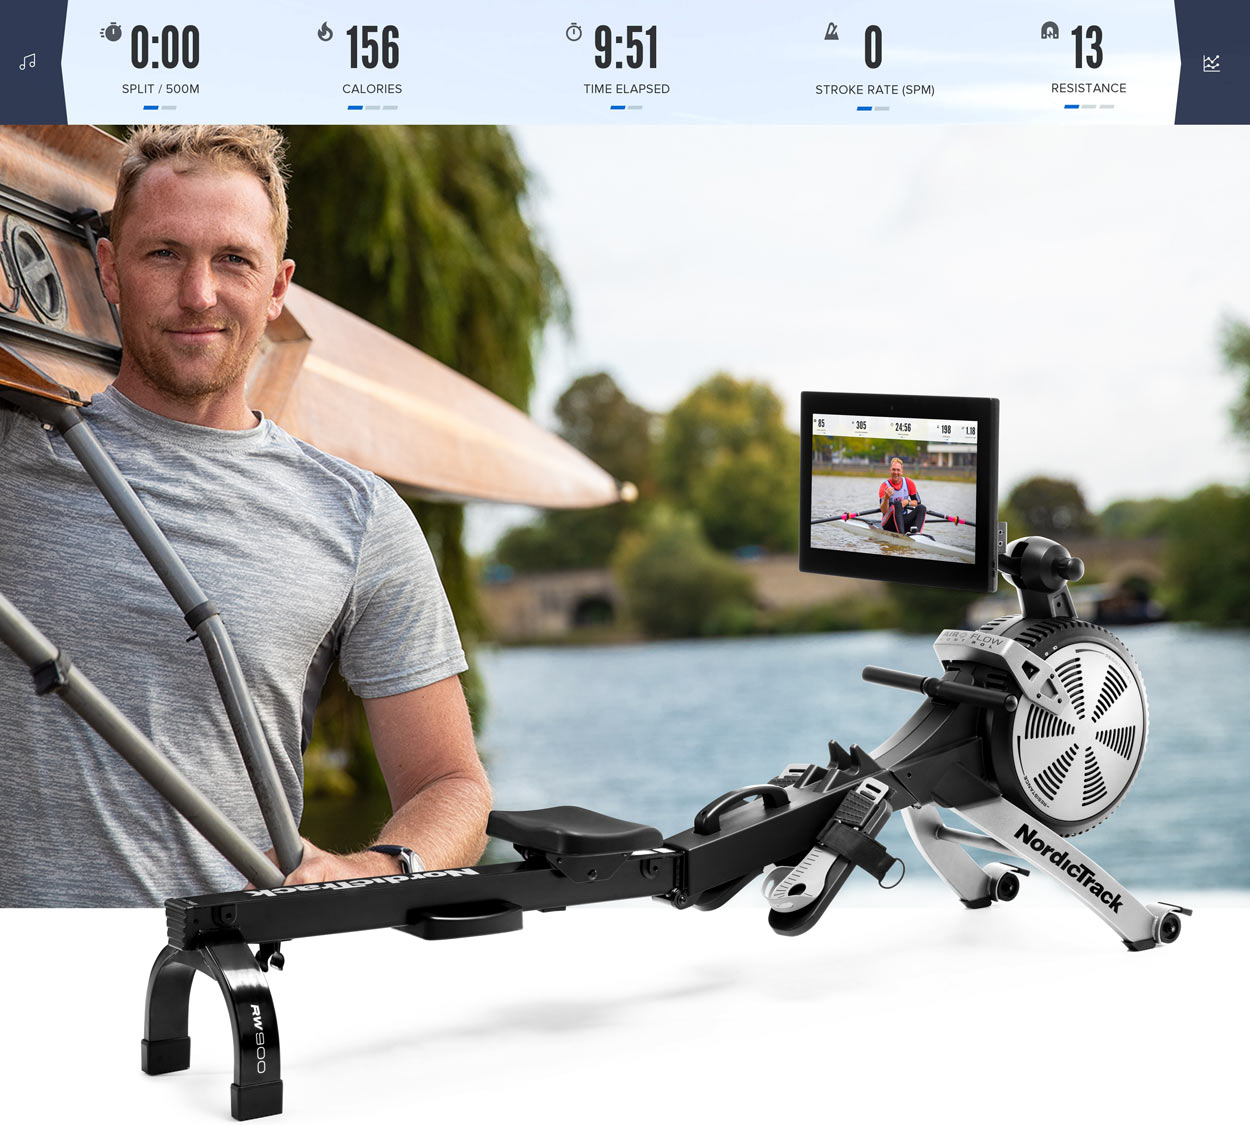 RW900 Rower - READ THE RW900 REVIEW